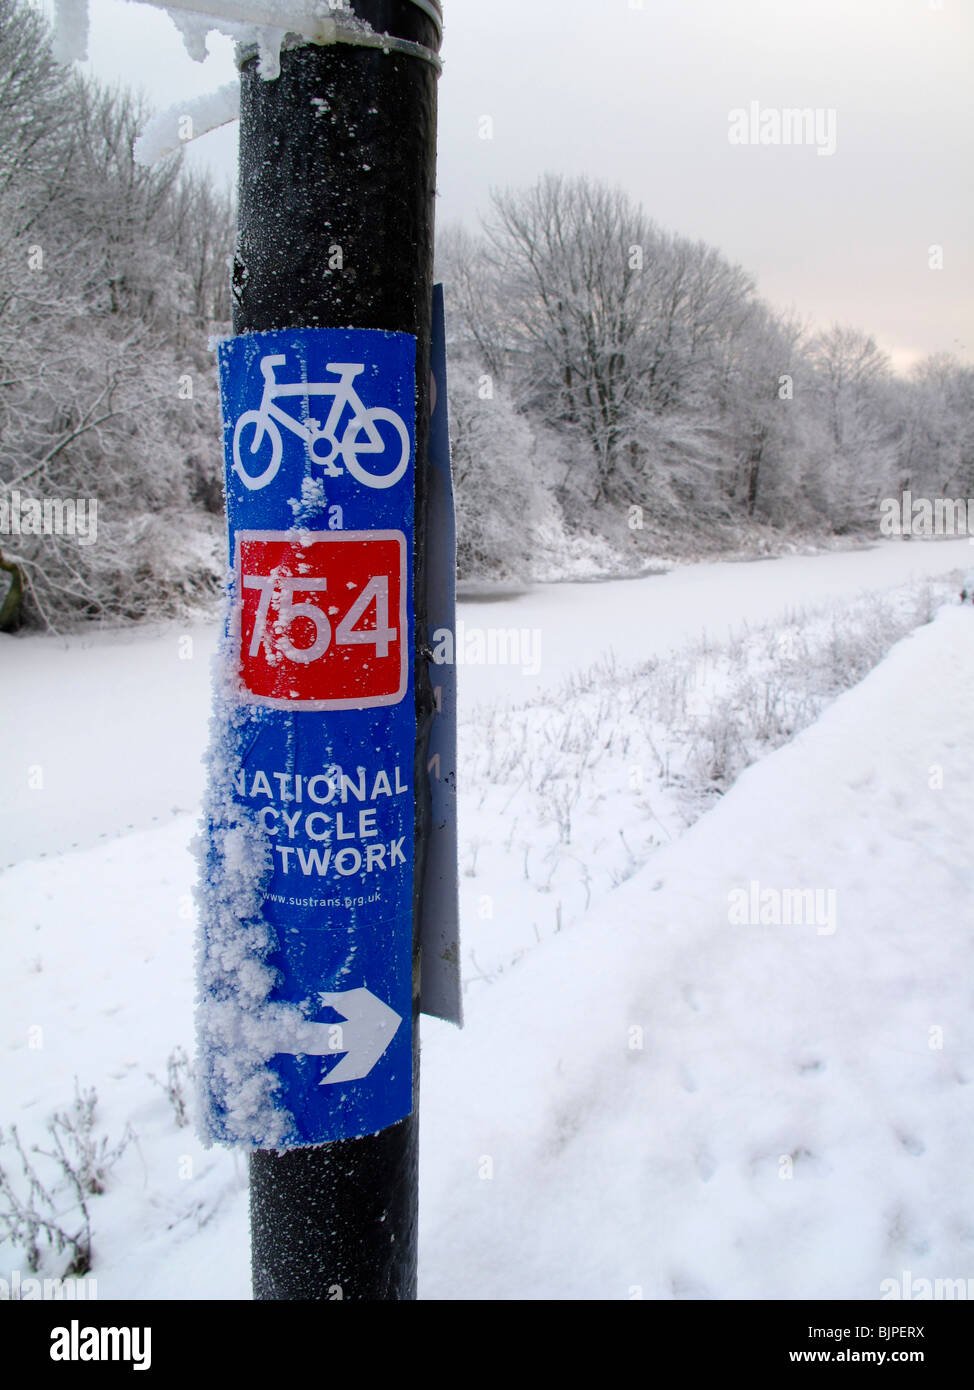 Cycleway signpost by canal in winter - Stock Image